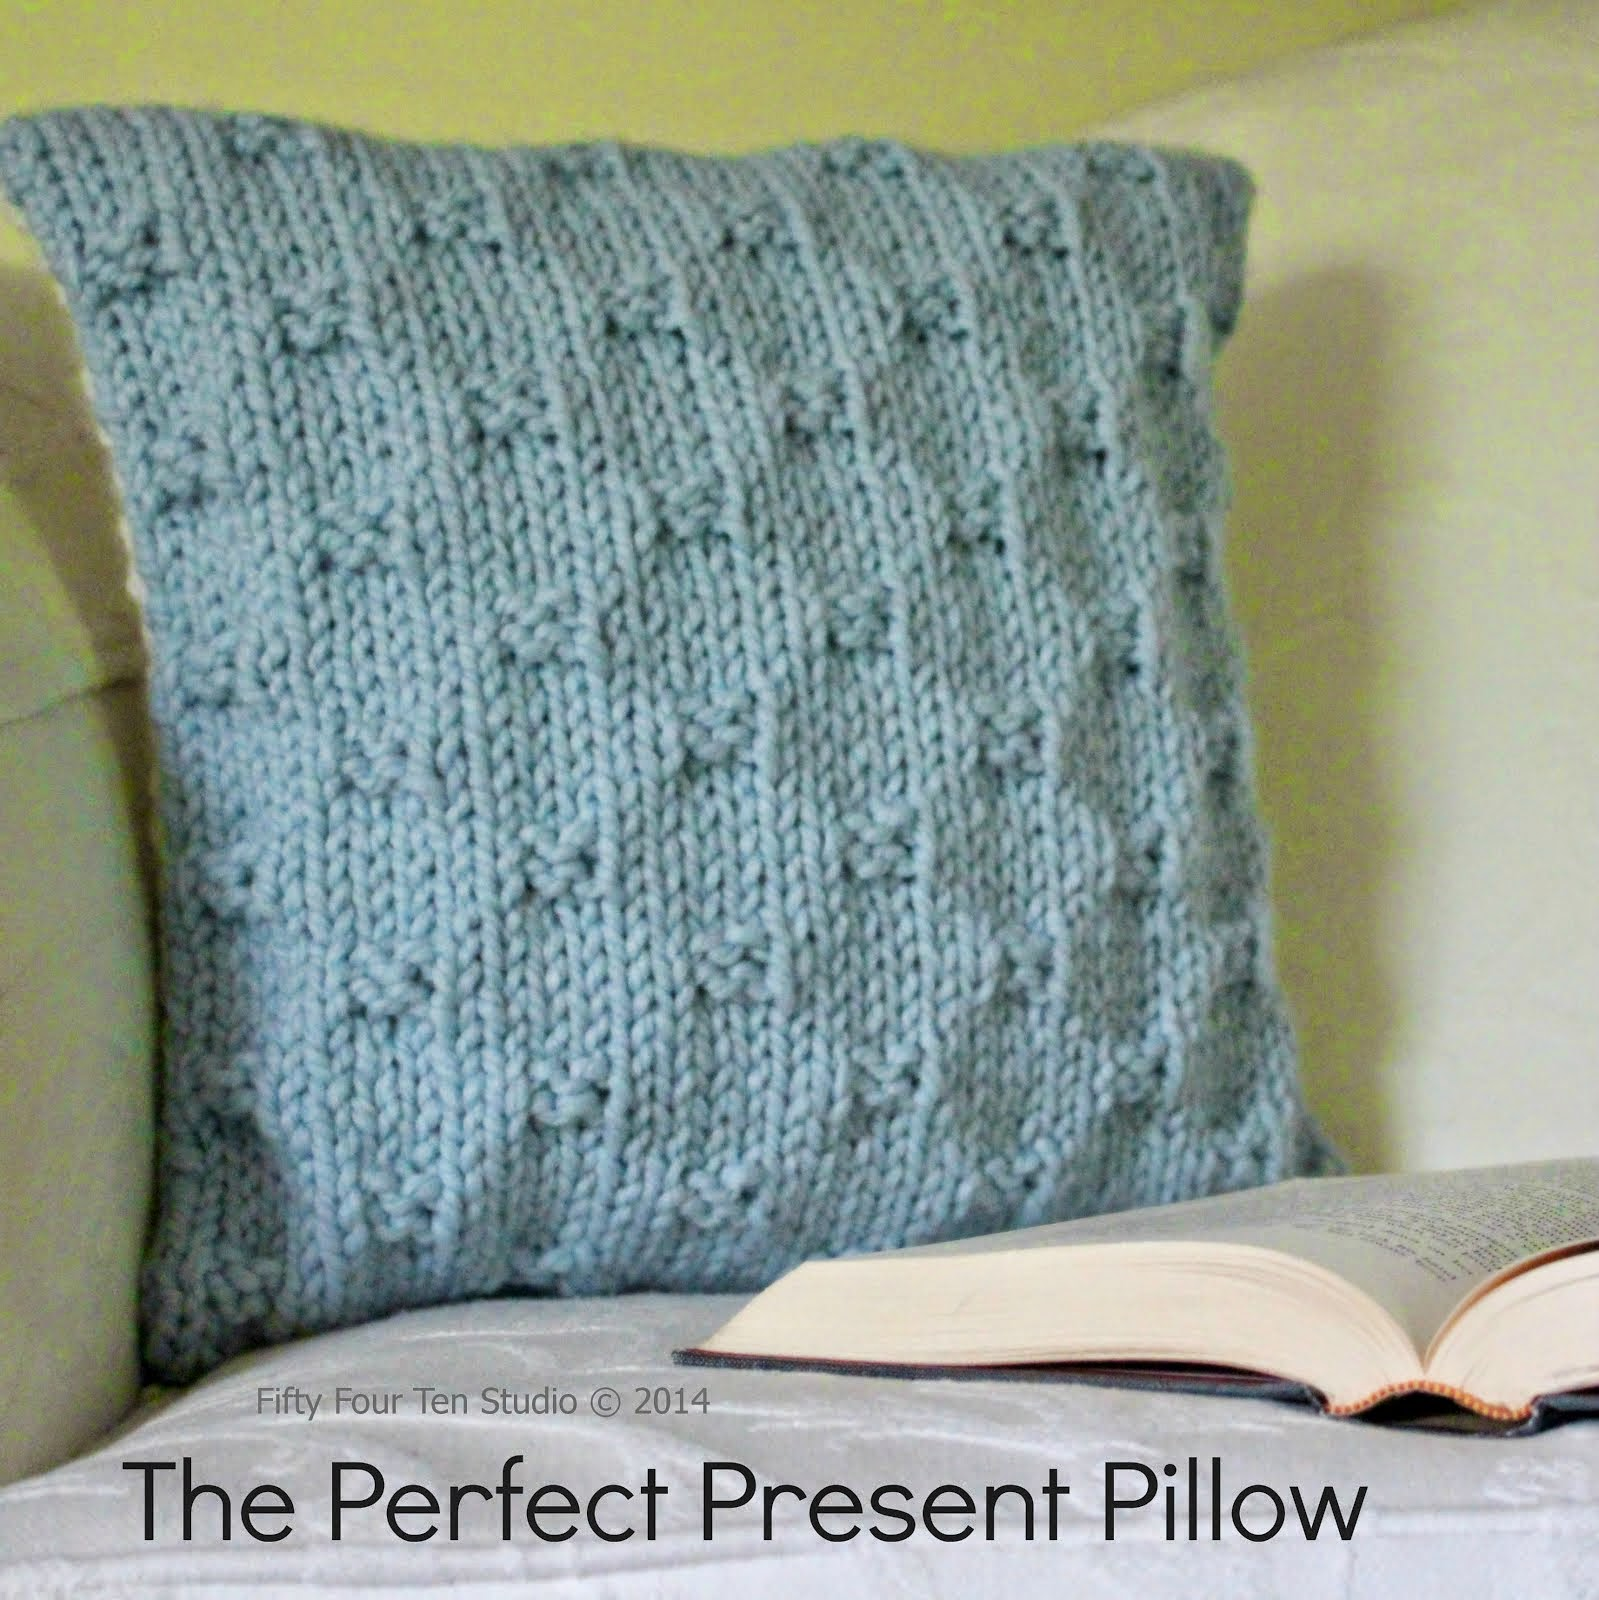 The Perfect Present Pillow